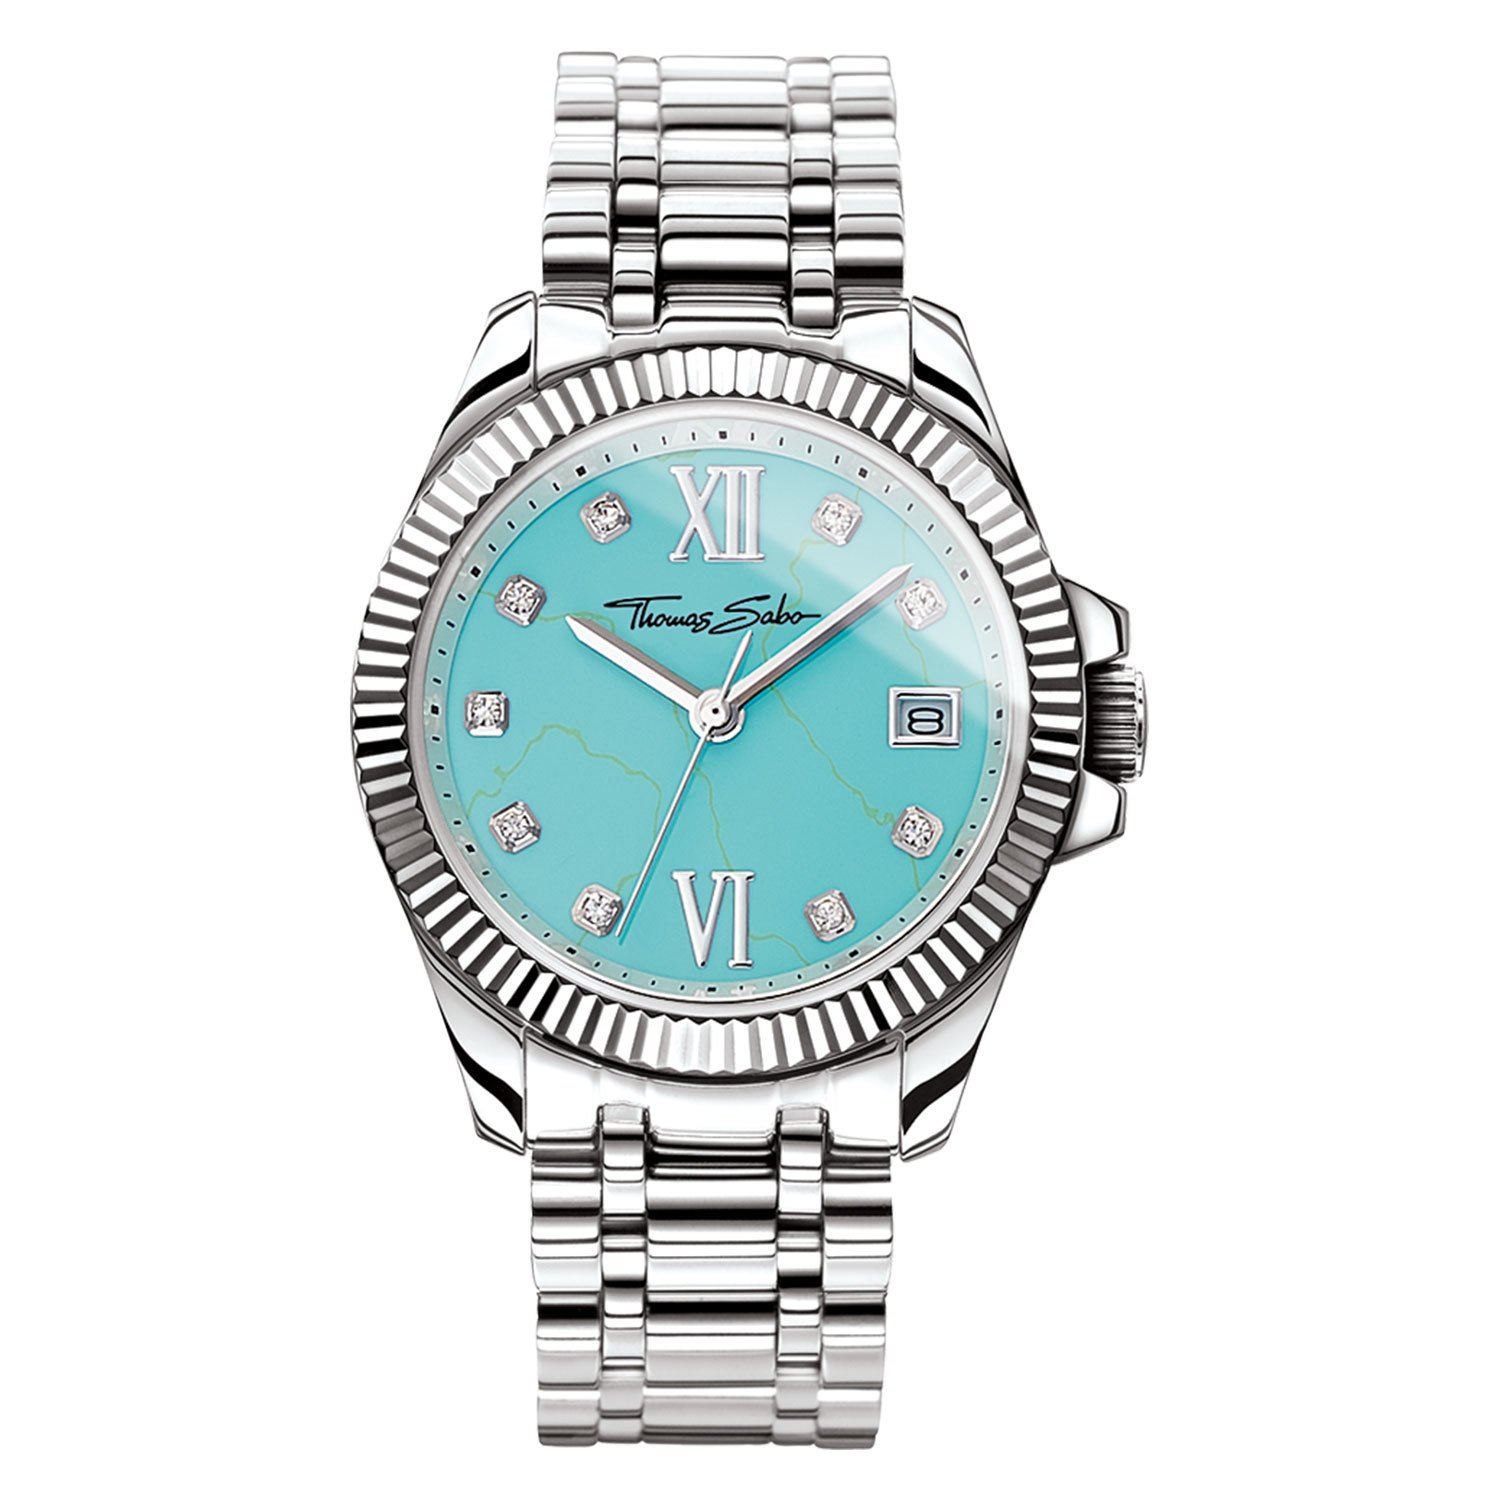 THOMAS SABO Womens Analogue Quartz Watch with Stainless Steel Strap WA0317-201-215-33 mm